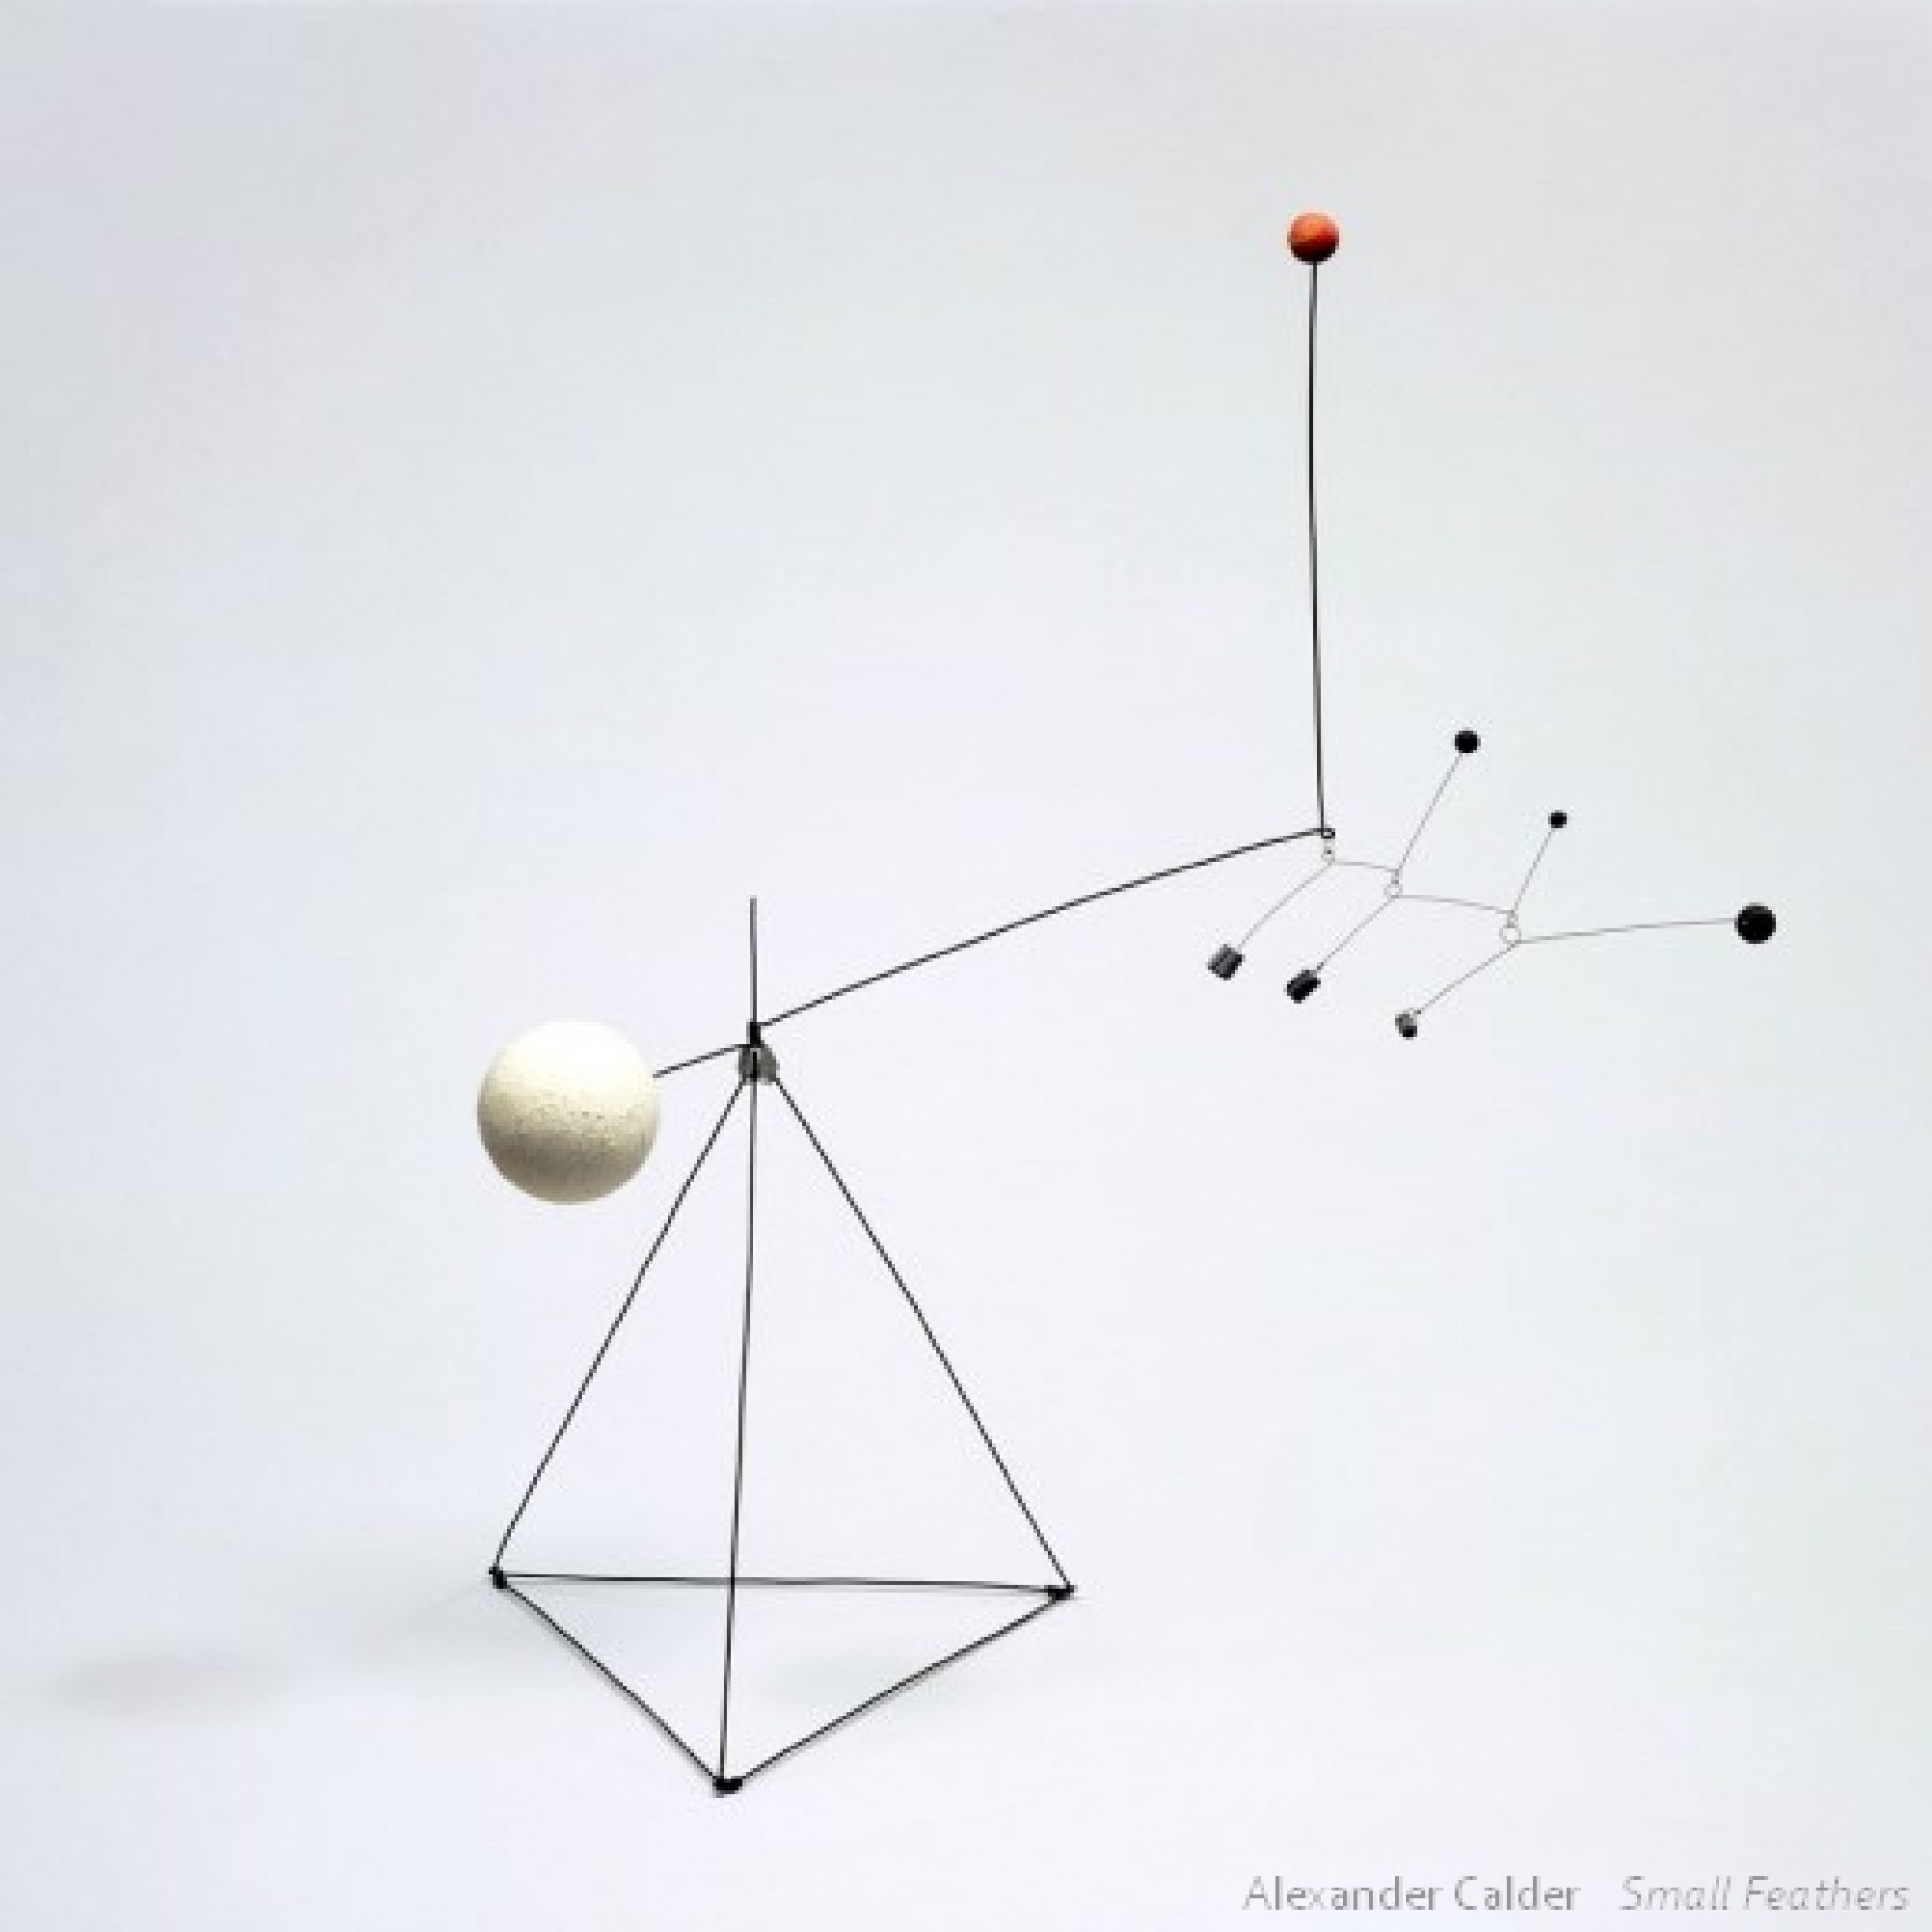 Paul Calder « Small Feathers »